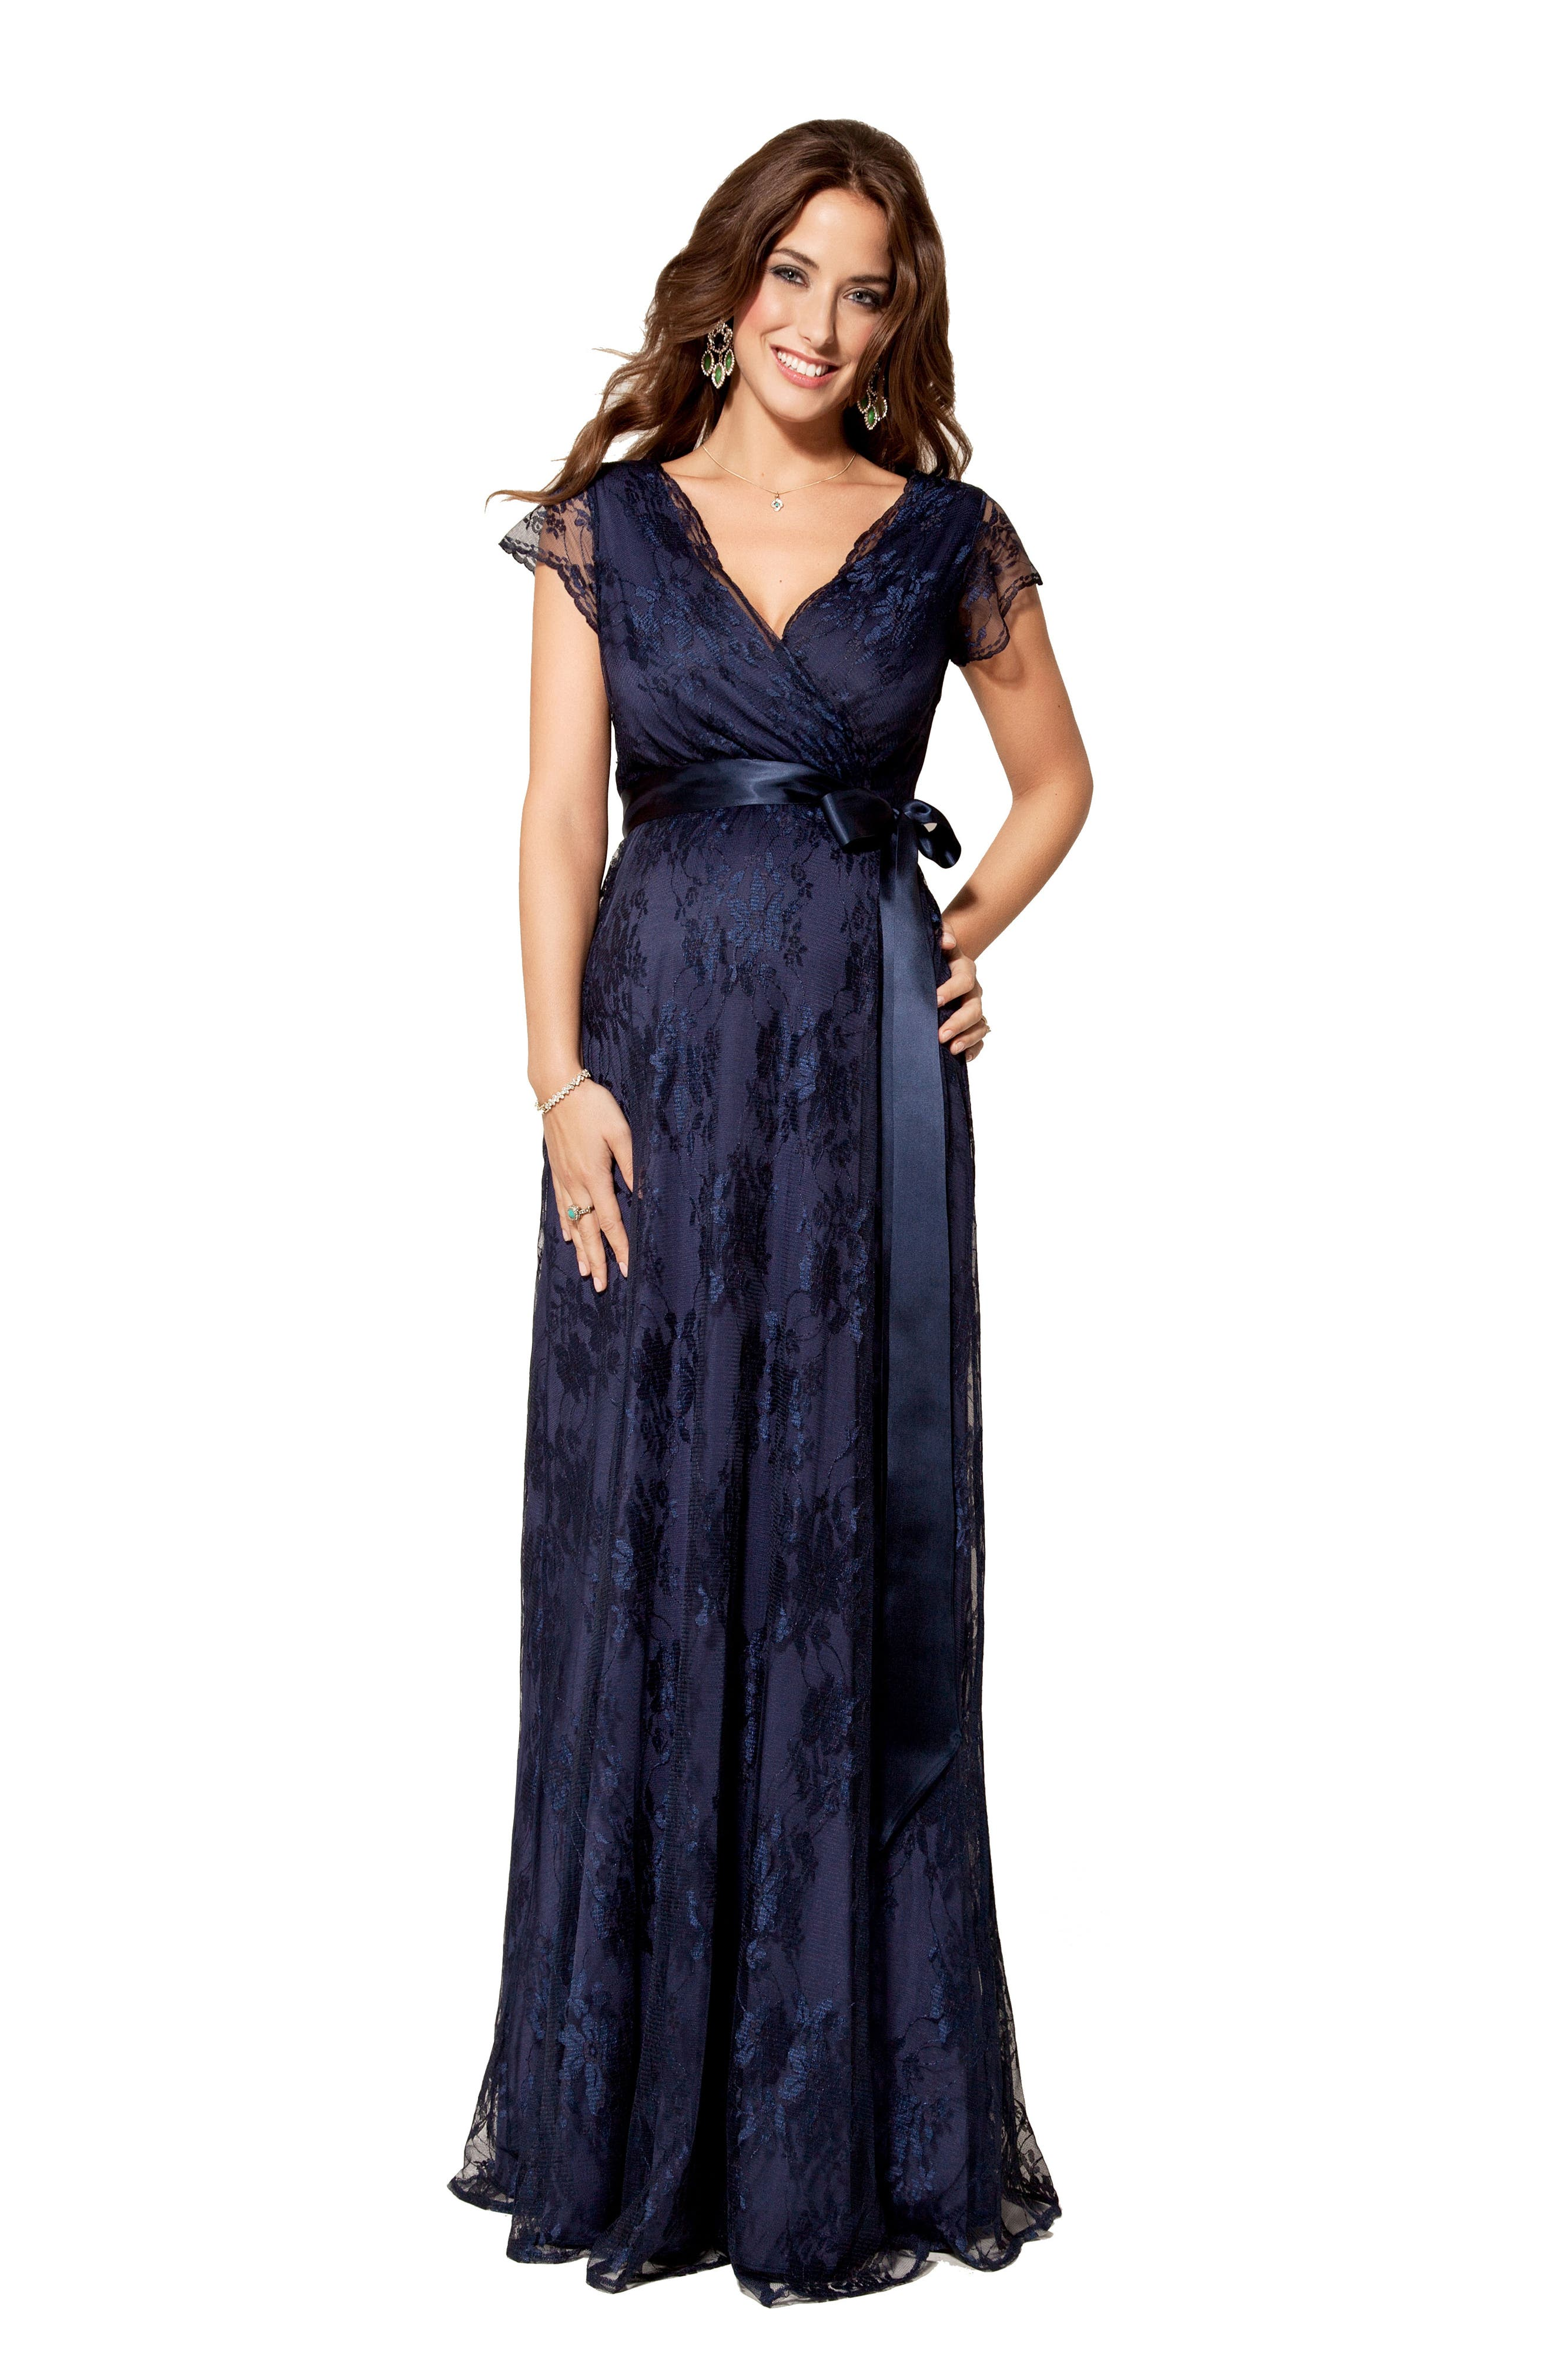 Eden Lace Maternity Gown,                             Alternate thumbnail 4, color,                             Arabian Nights